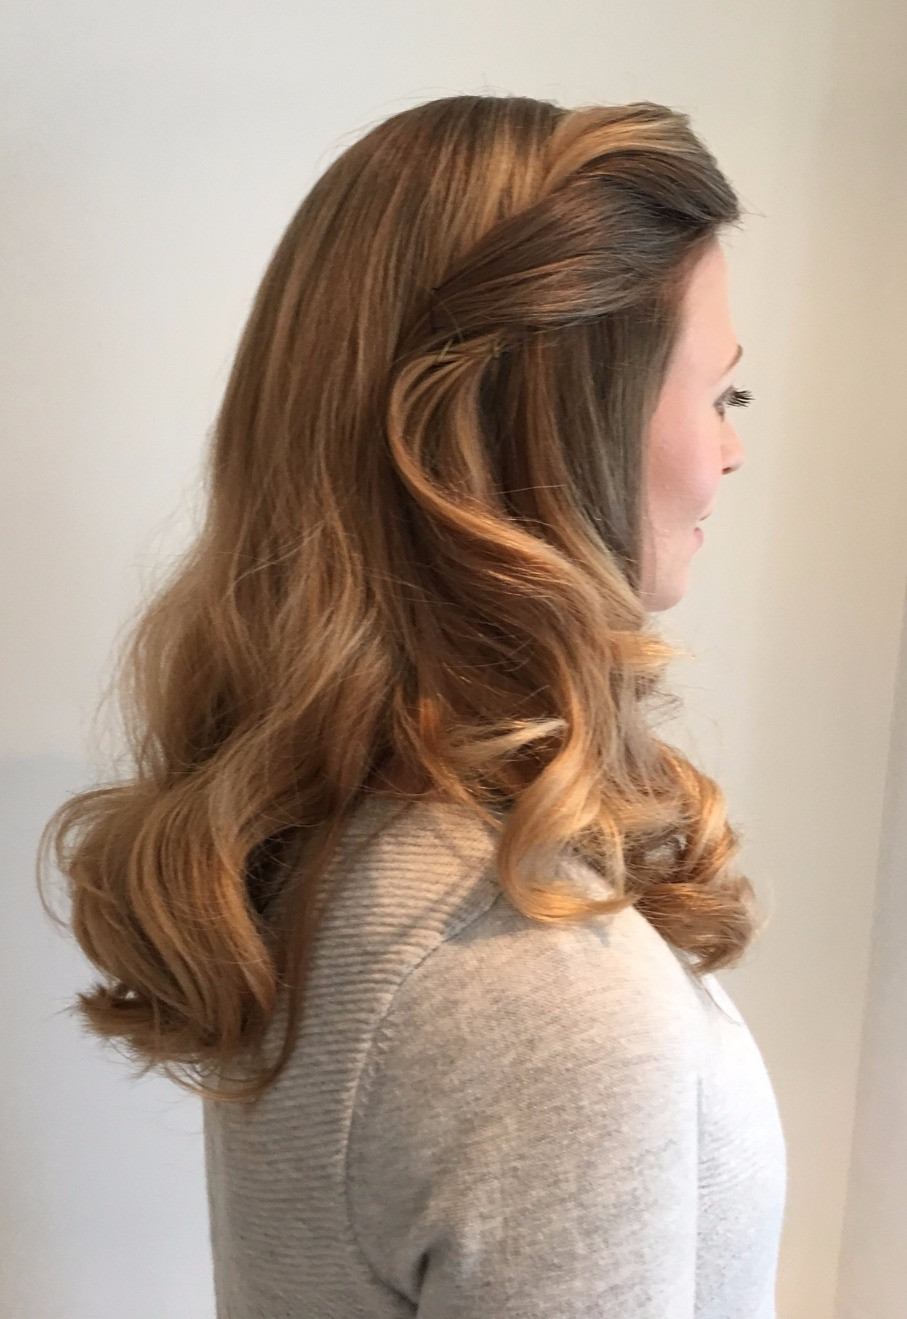 Amelia's wedding hair with vintage style waves